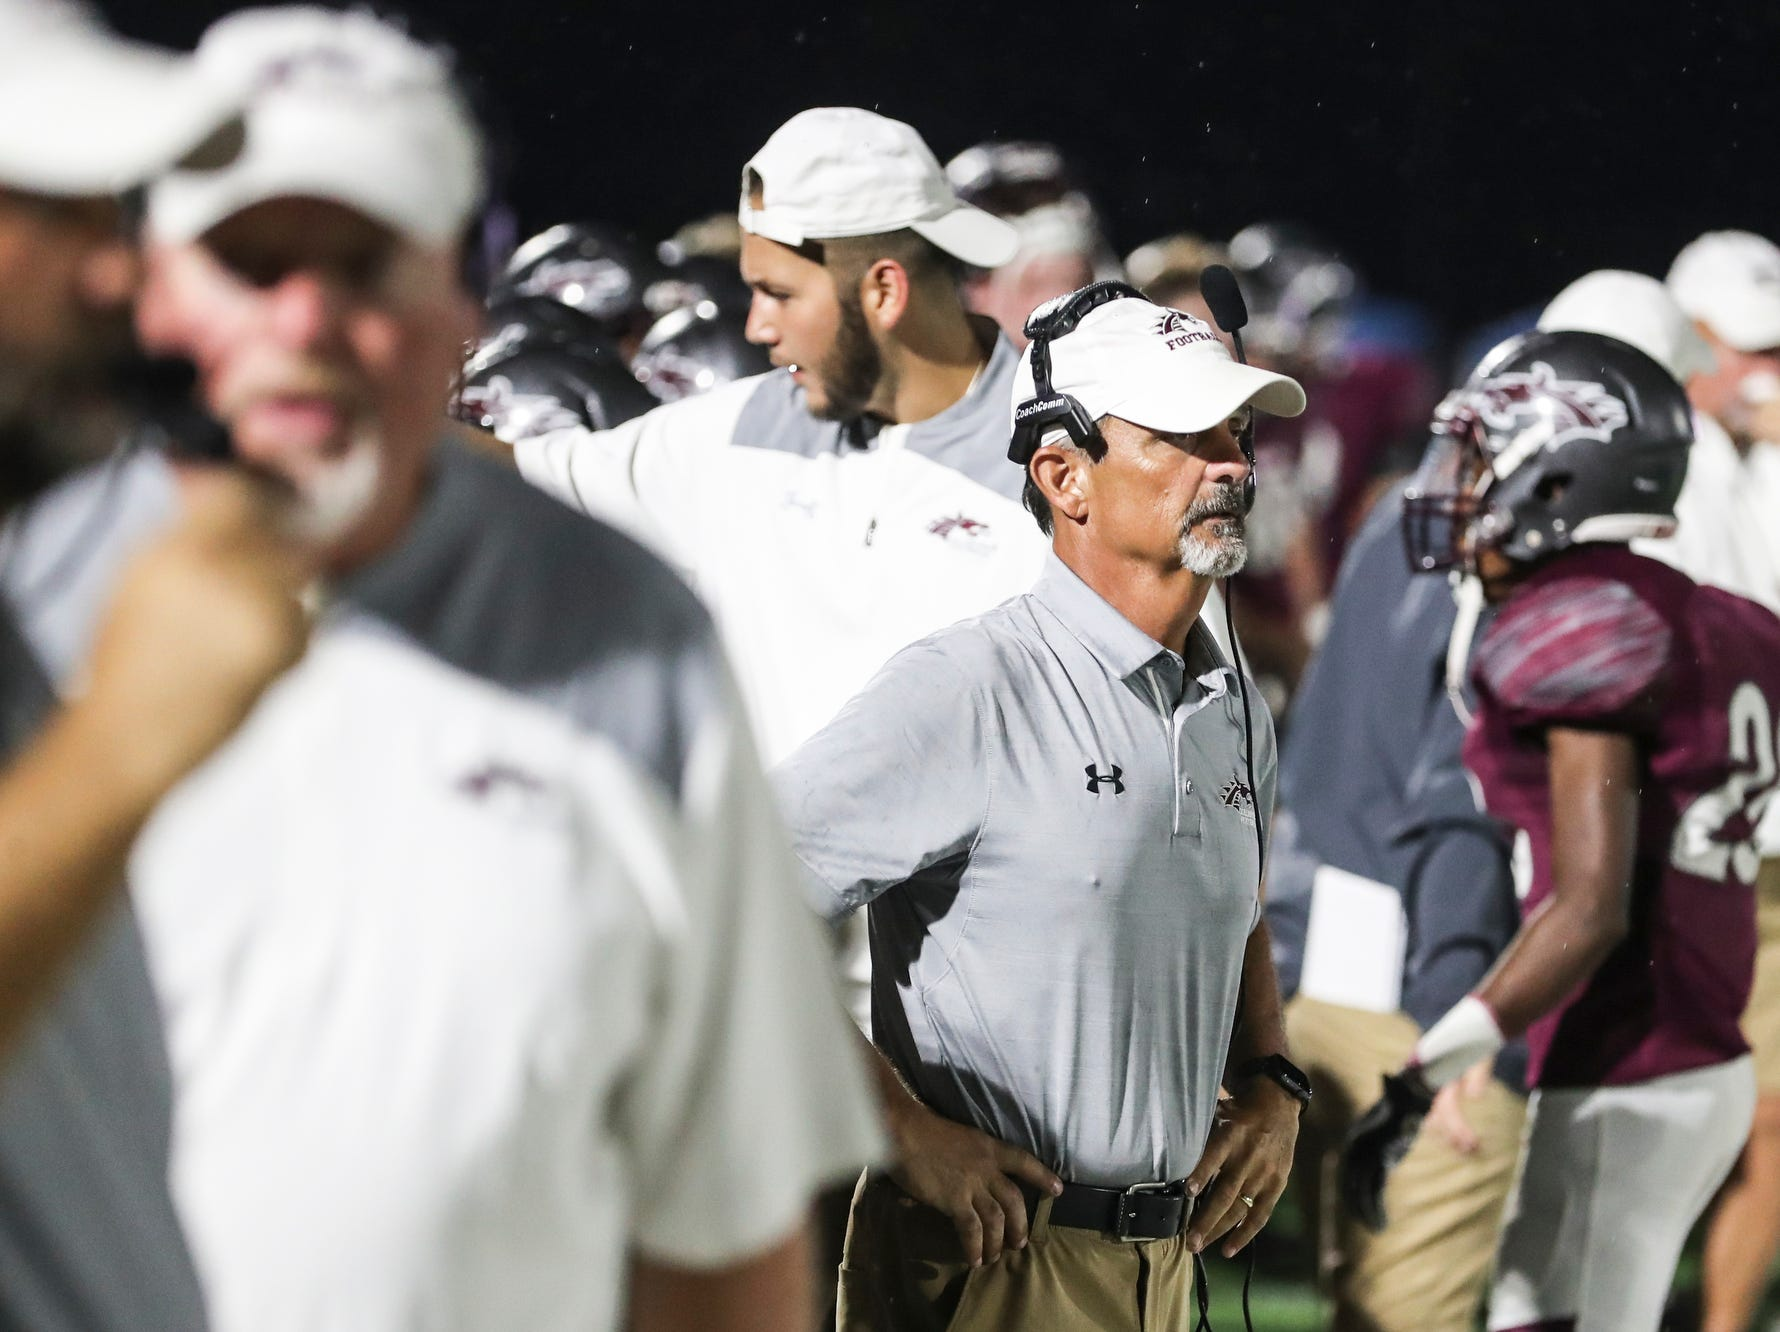 September 21 2018 - Collierville's head coach Mike O'Neill watches his players during Friday night's game versus Wooddale at Collierville High School.